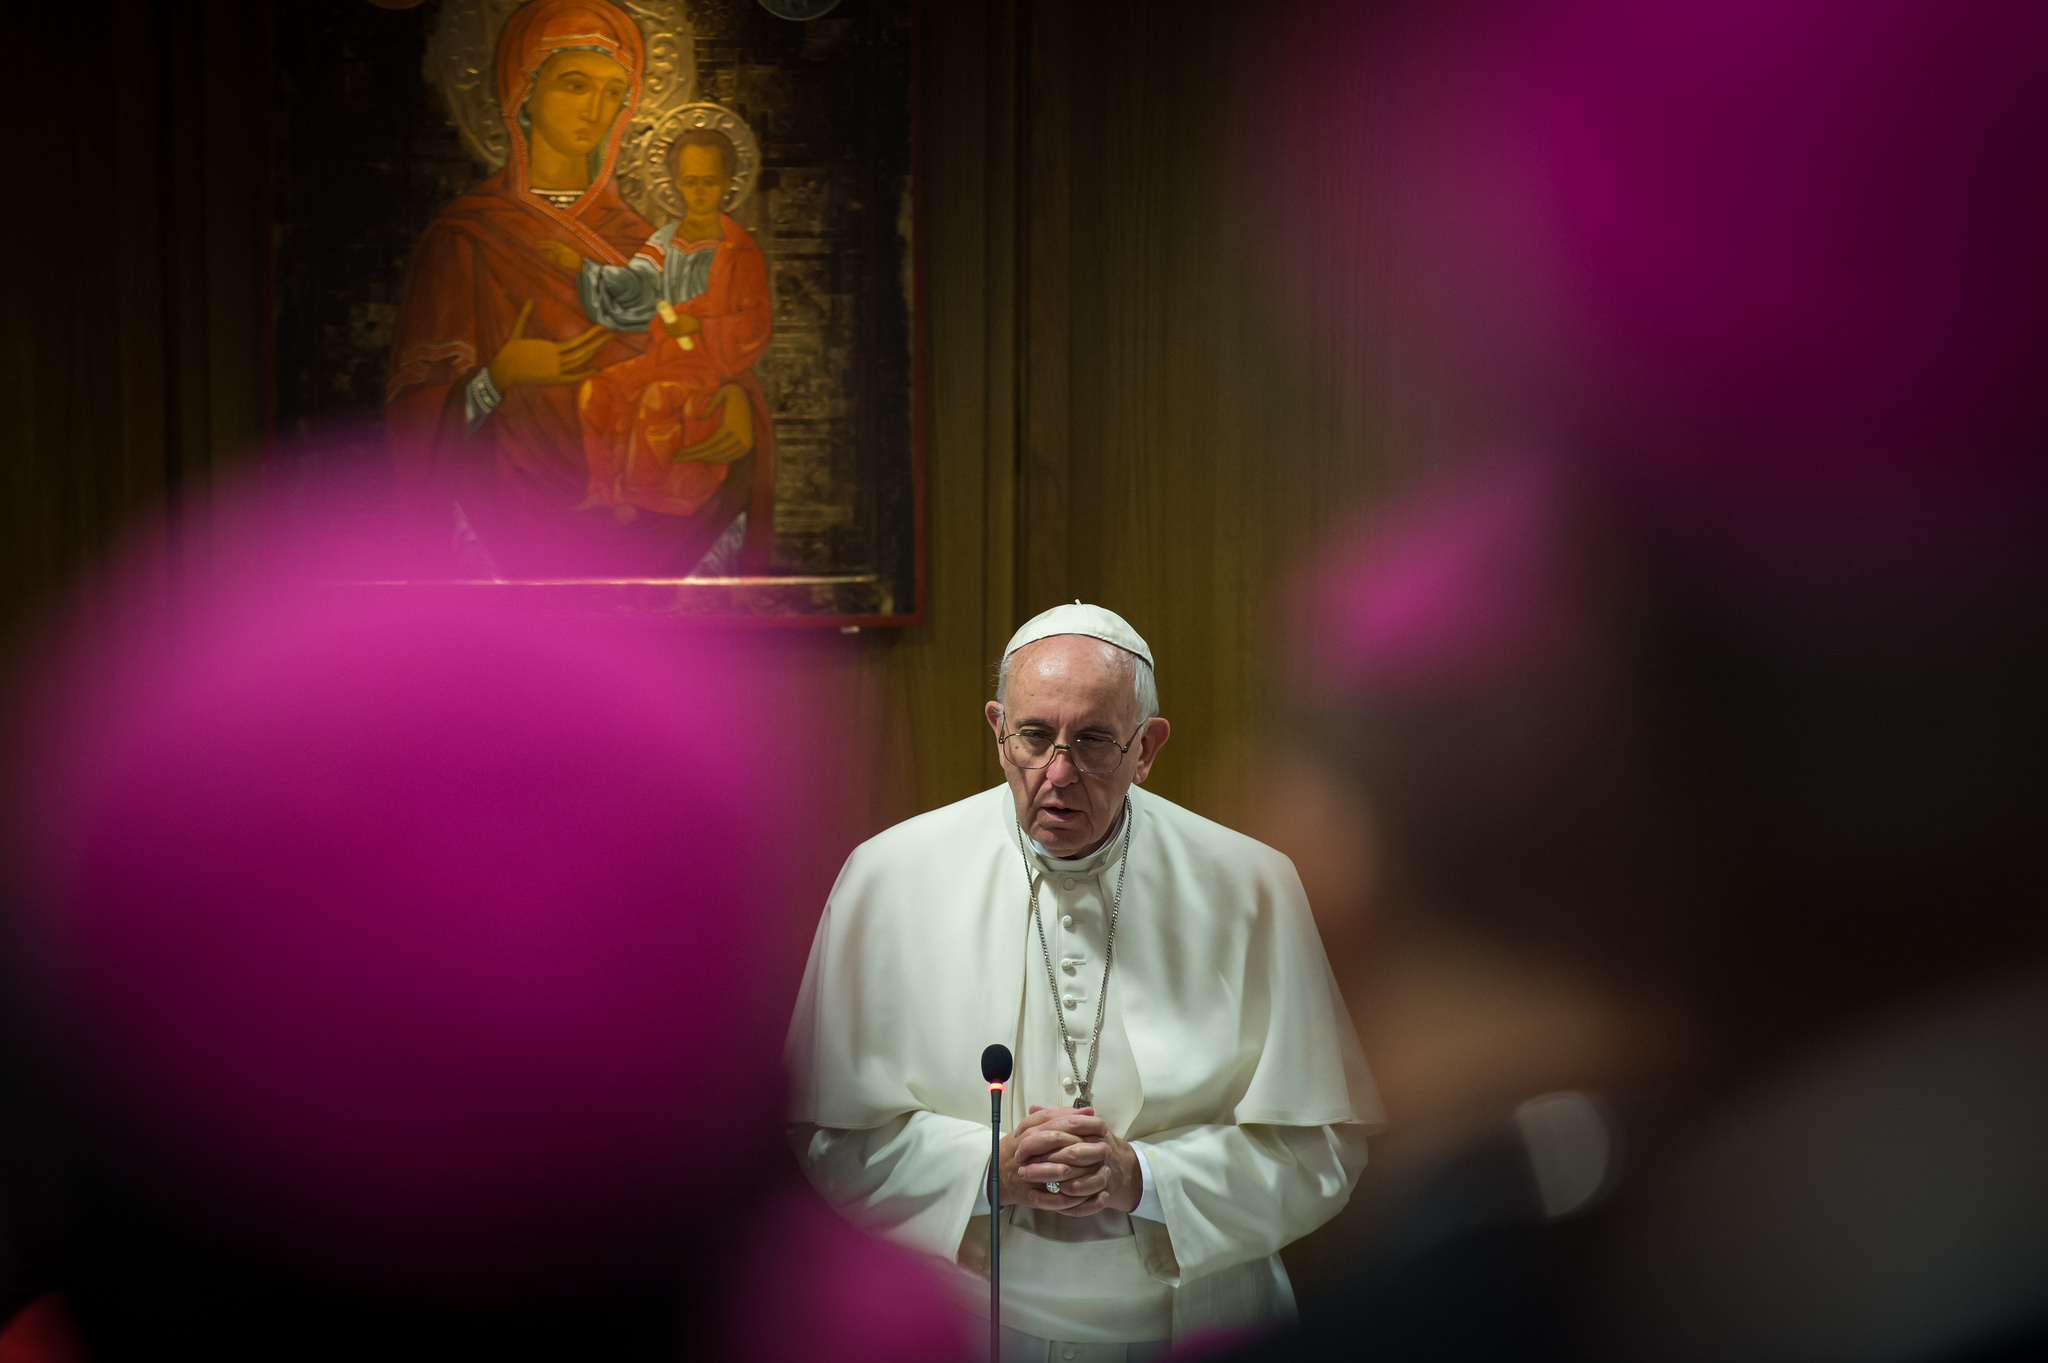 Pope Francis praying during the Synod of Bishops in the Vatican